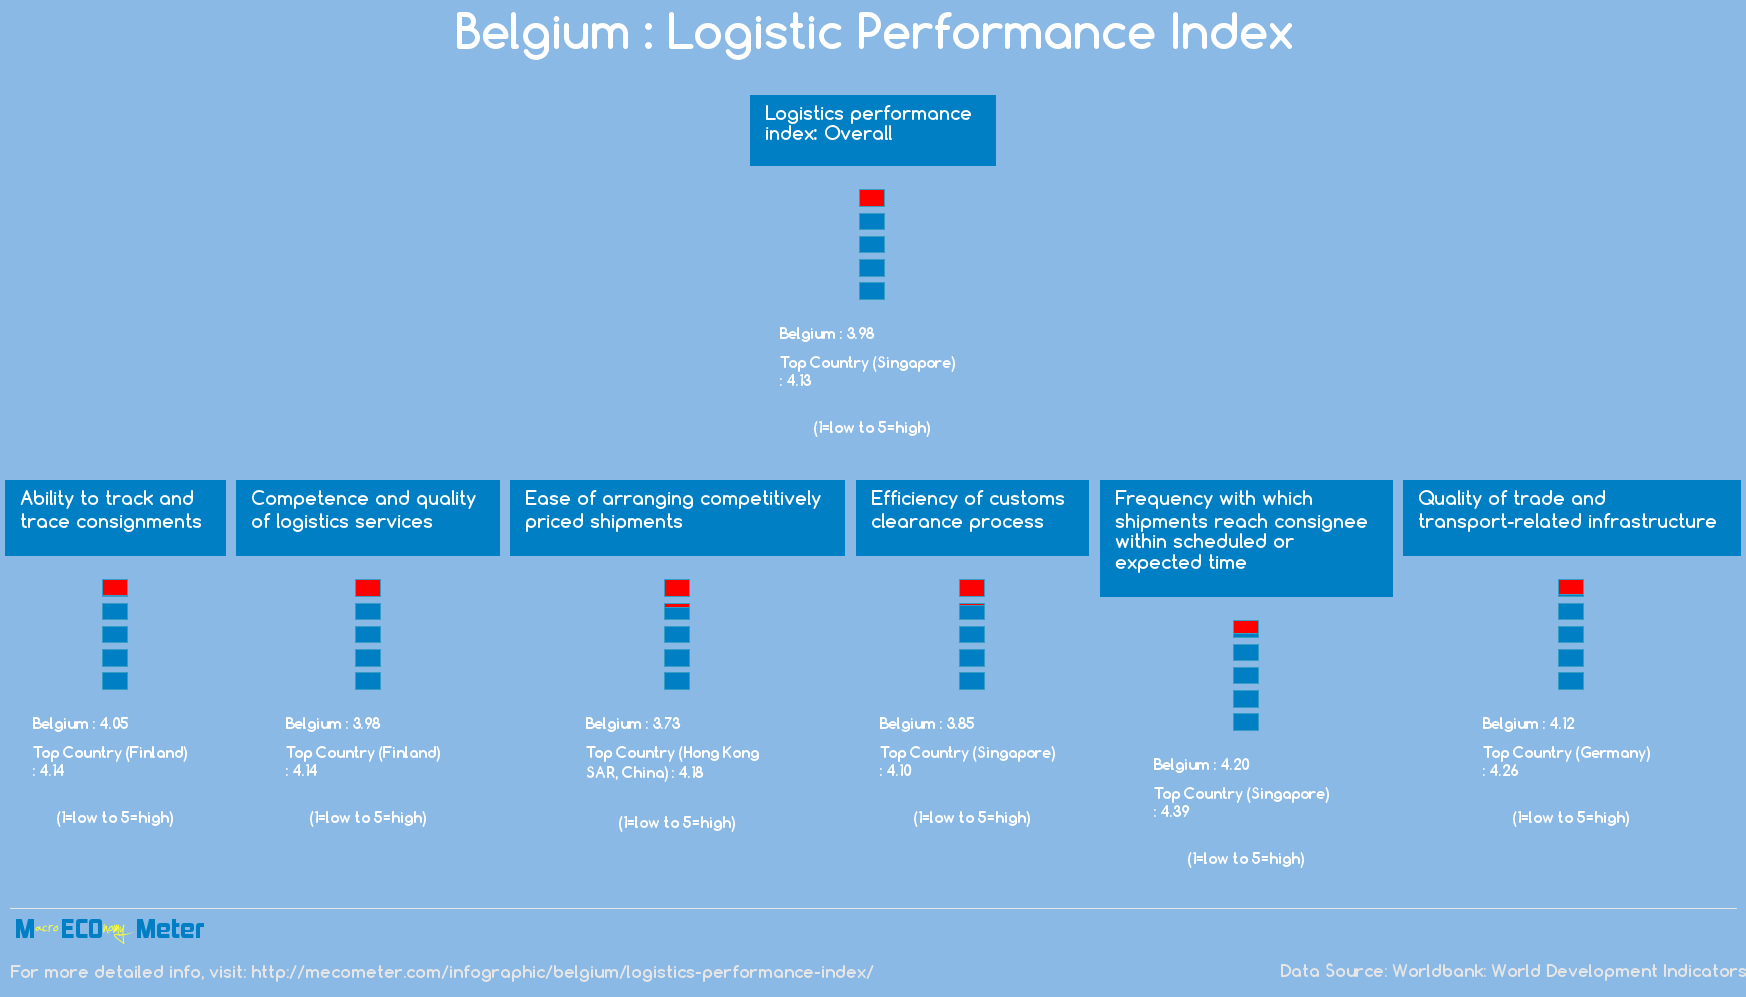 Belgium : Logistic Performance Index